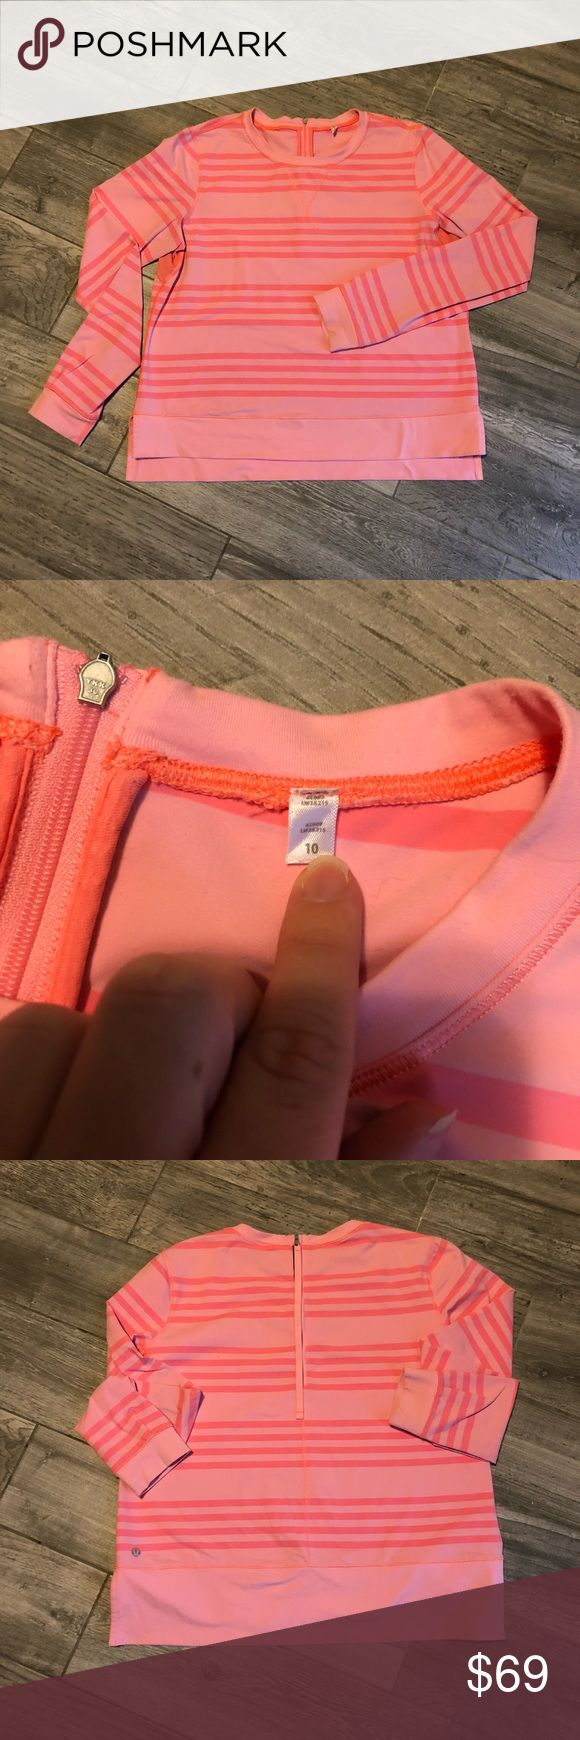 [lululemom] Pink Striped Zip Up Sweater - Size 10 Super cute and girly pink striped sweater by lululemon. Zipper located on back of neck and has a pull tag to make it easy on yourself when zipping up behind your head. Size 10. Breathable pink mesh material under armpits for working out purposes. lululemon athletica Sweaters Crew & Scoop Necks